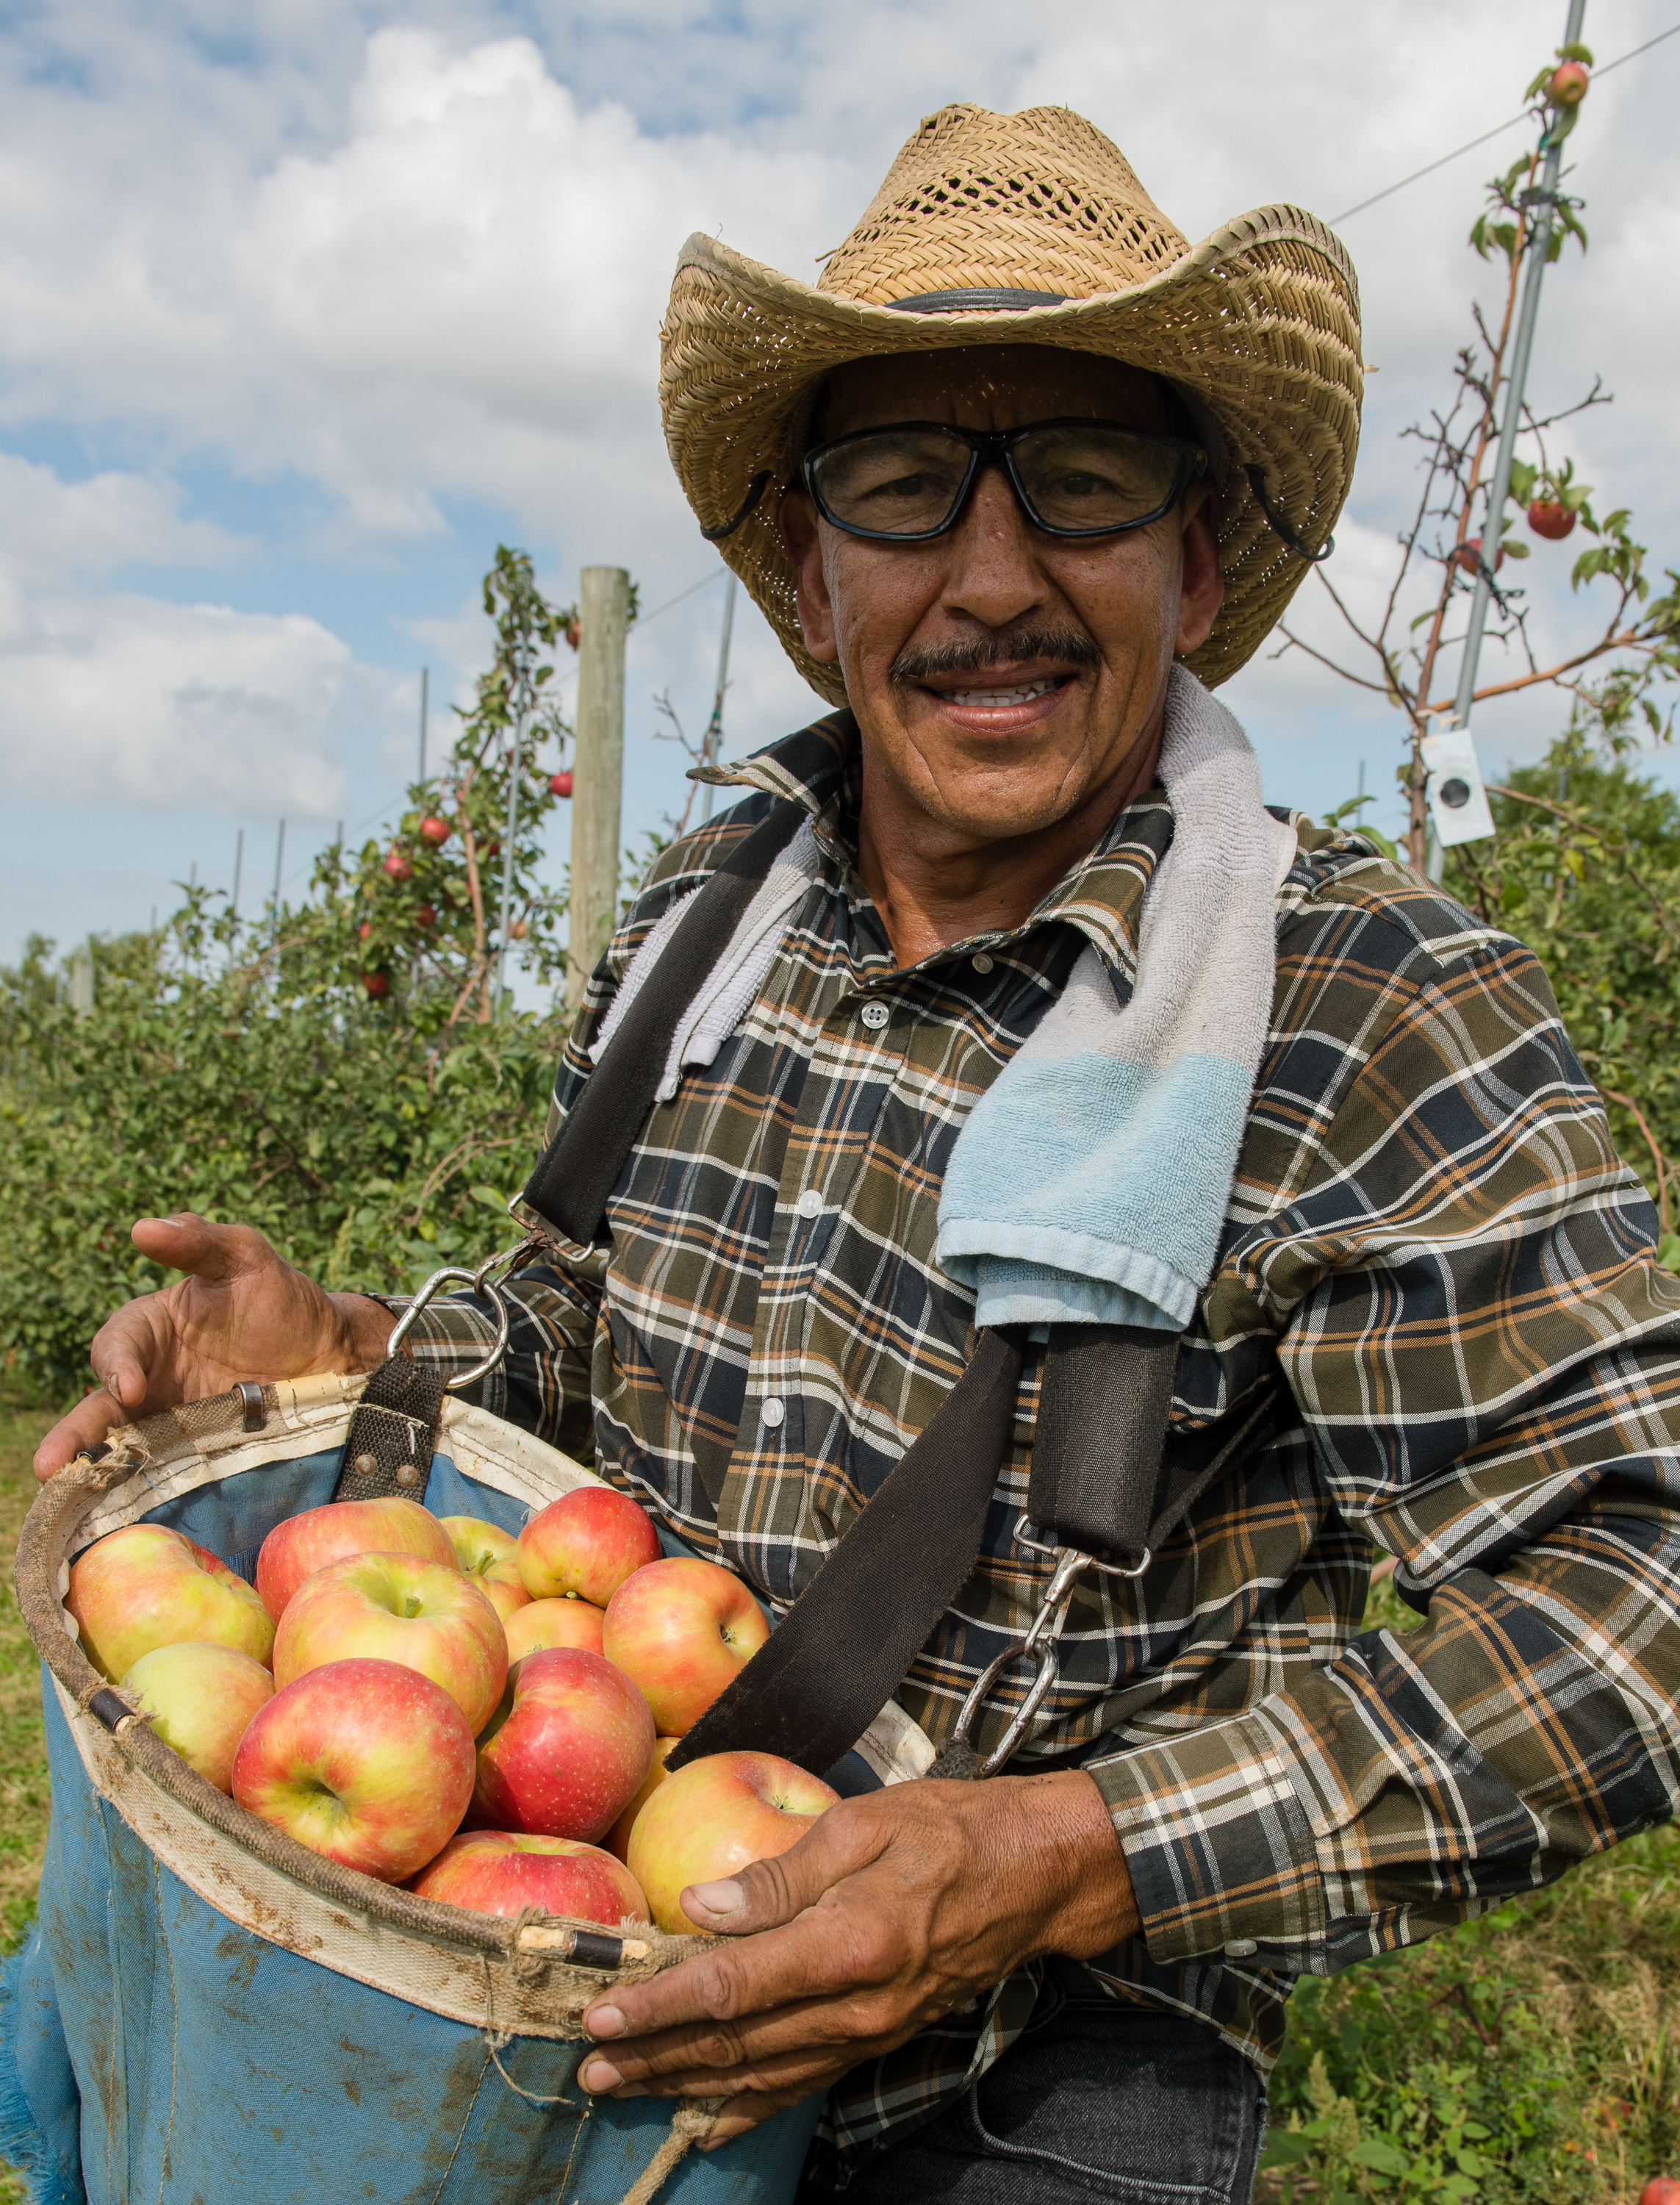 All apples are picked by hand by one employee. Photo credit: Joseph L. Murphy/Iowa Soybean Association